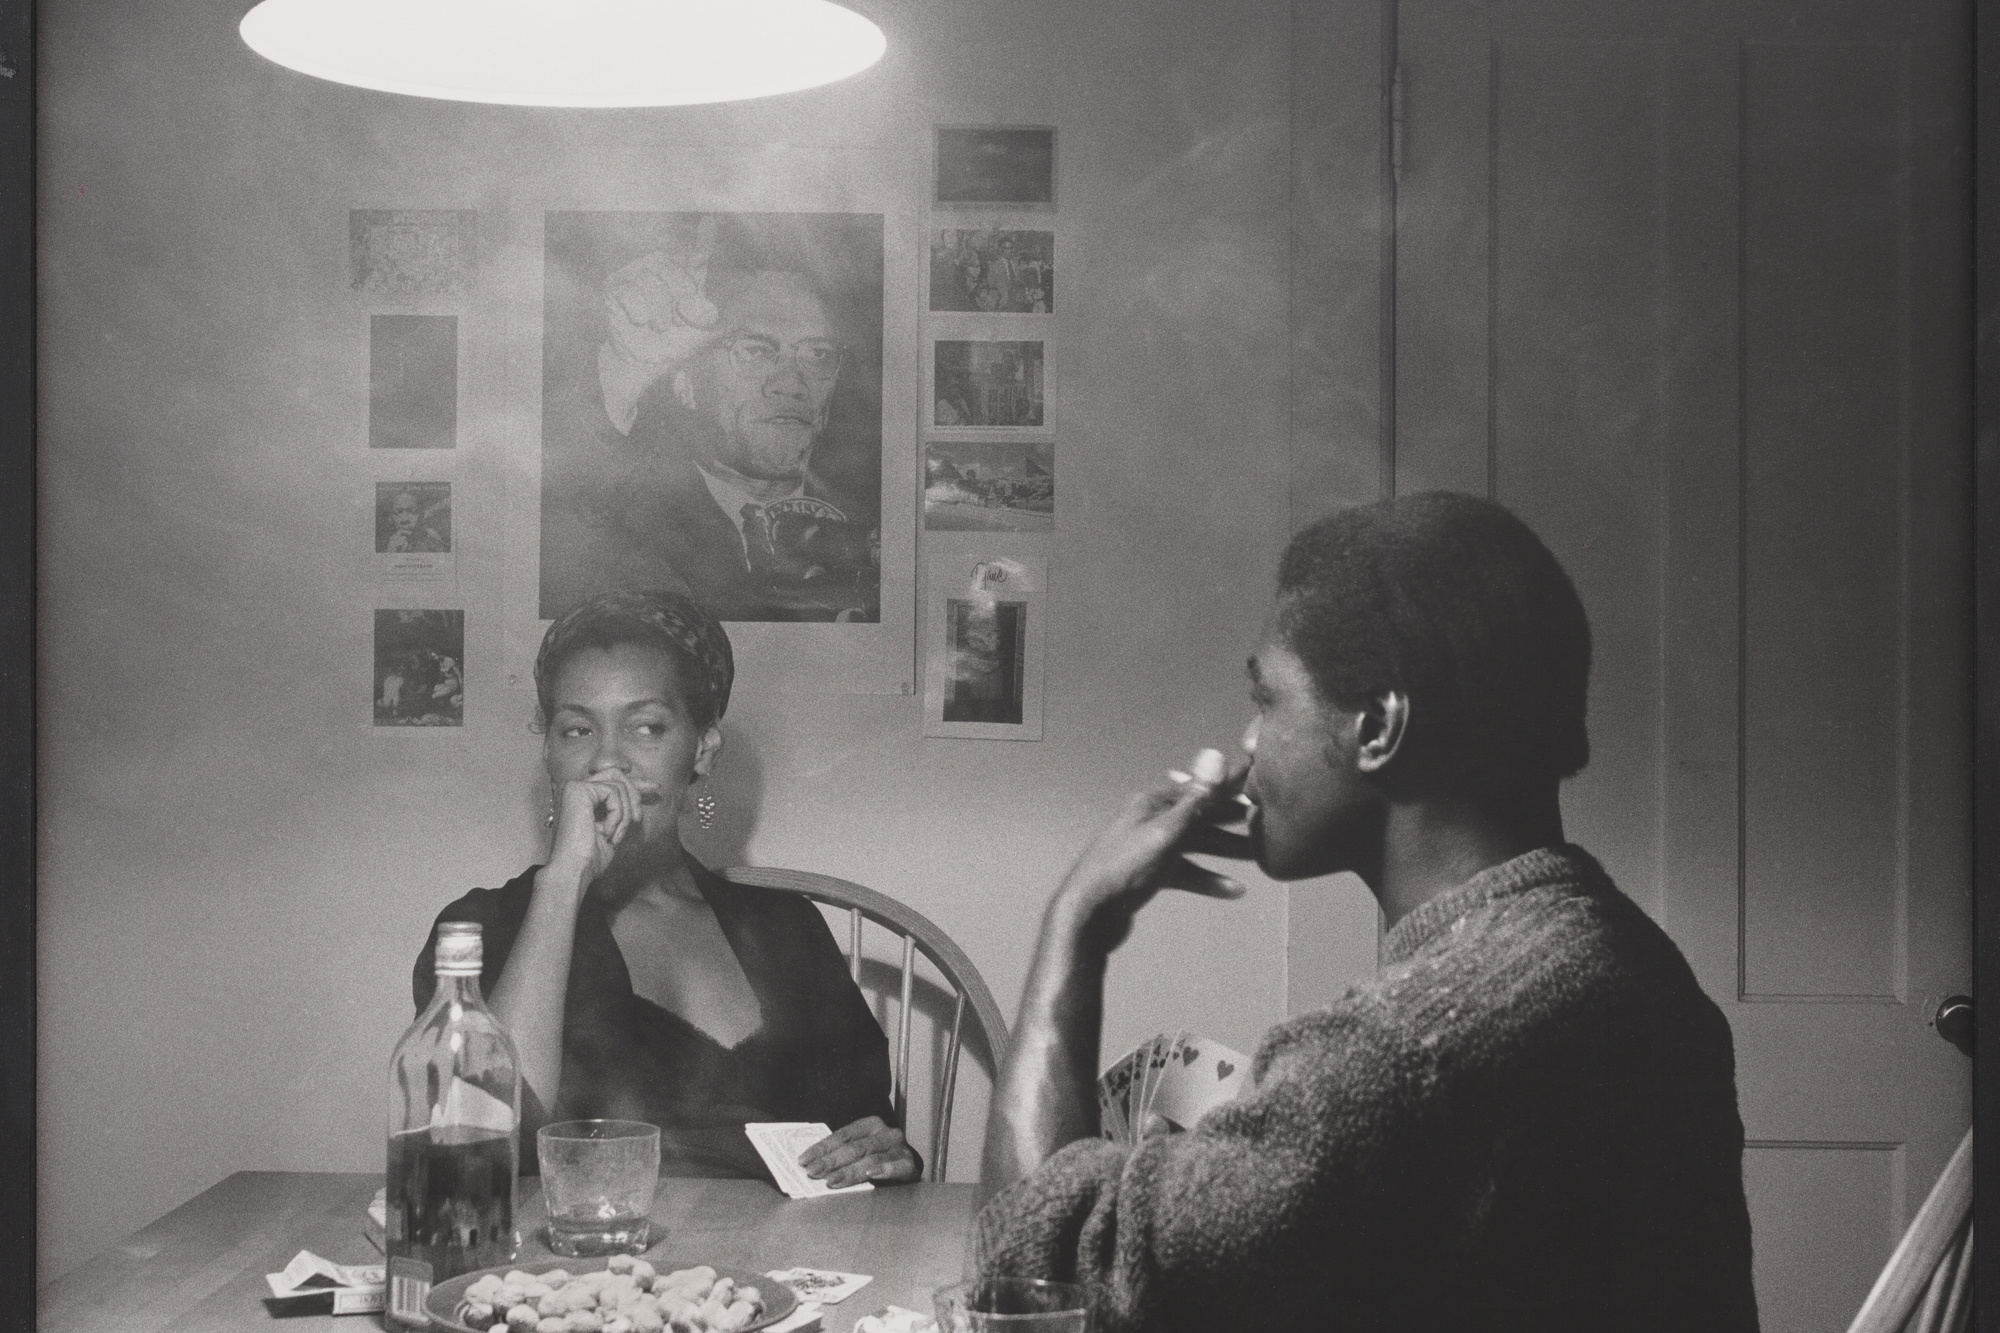 Carrie Mae Weems. Untitled (Man smoking). 1990. Gelatin silver print, 27 3/16 × 27 1/16″ (69 × 68.8 cm). The Family of Man Fund. © 2016 Carrie Mae Weems